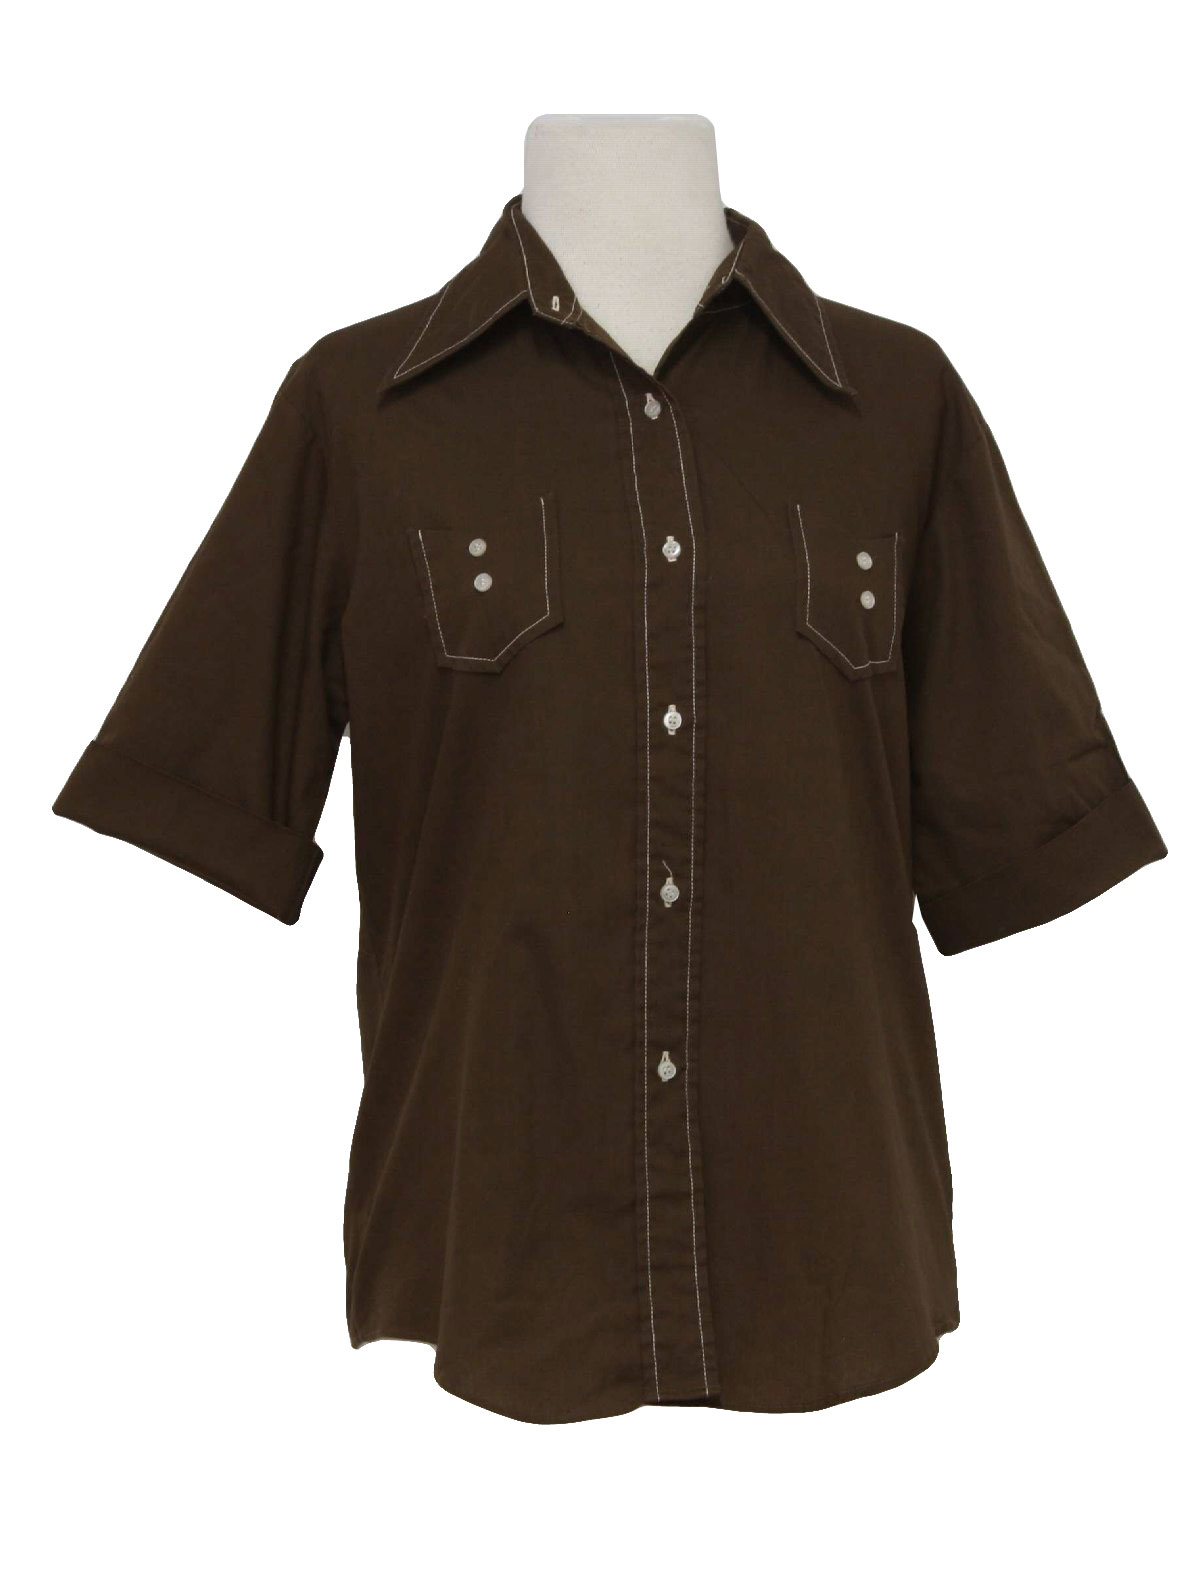 Retro 1960s shirt late 60s take 1 womens brown for White shirt brown buttons